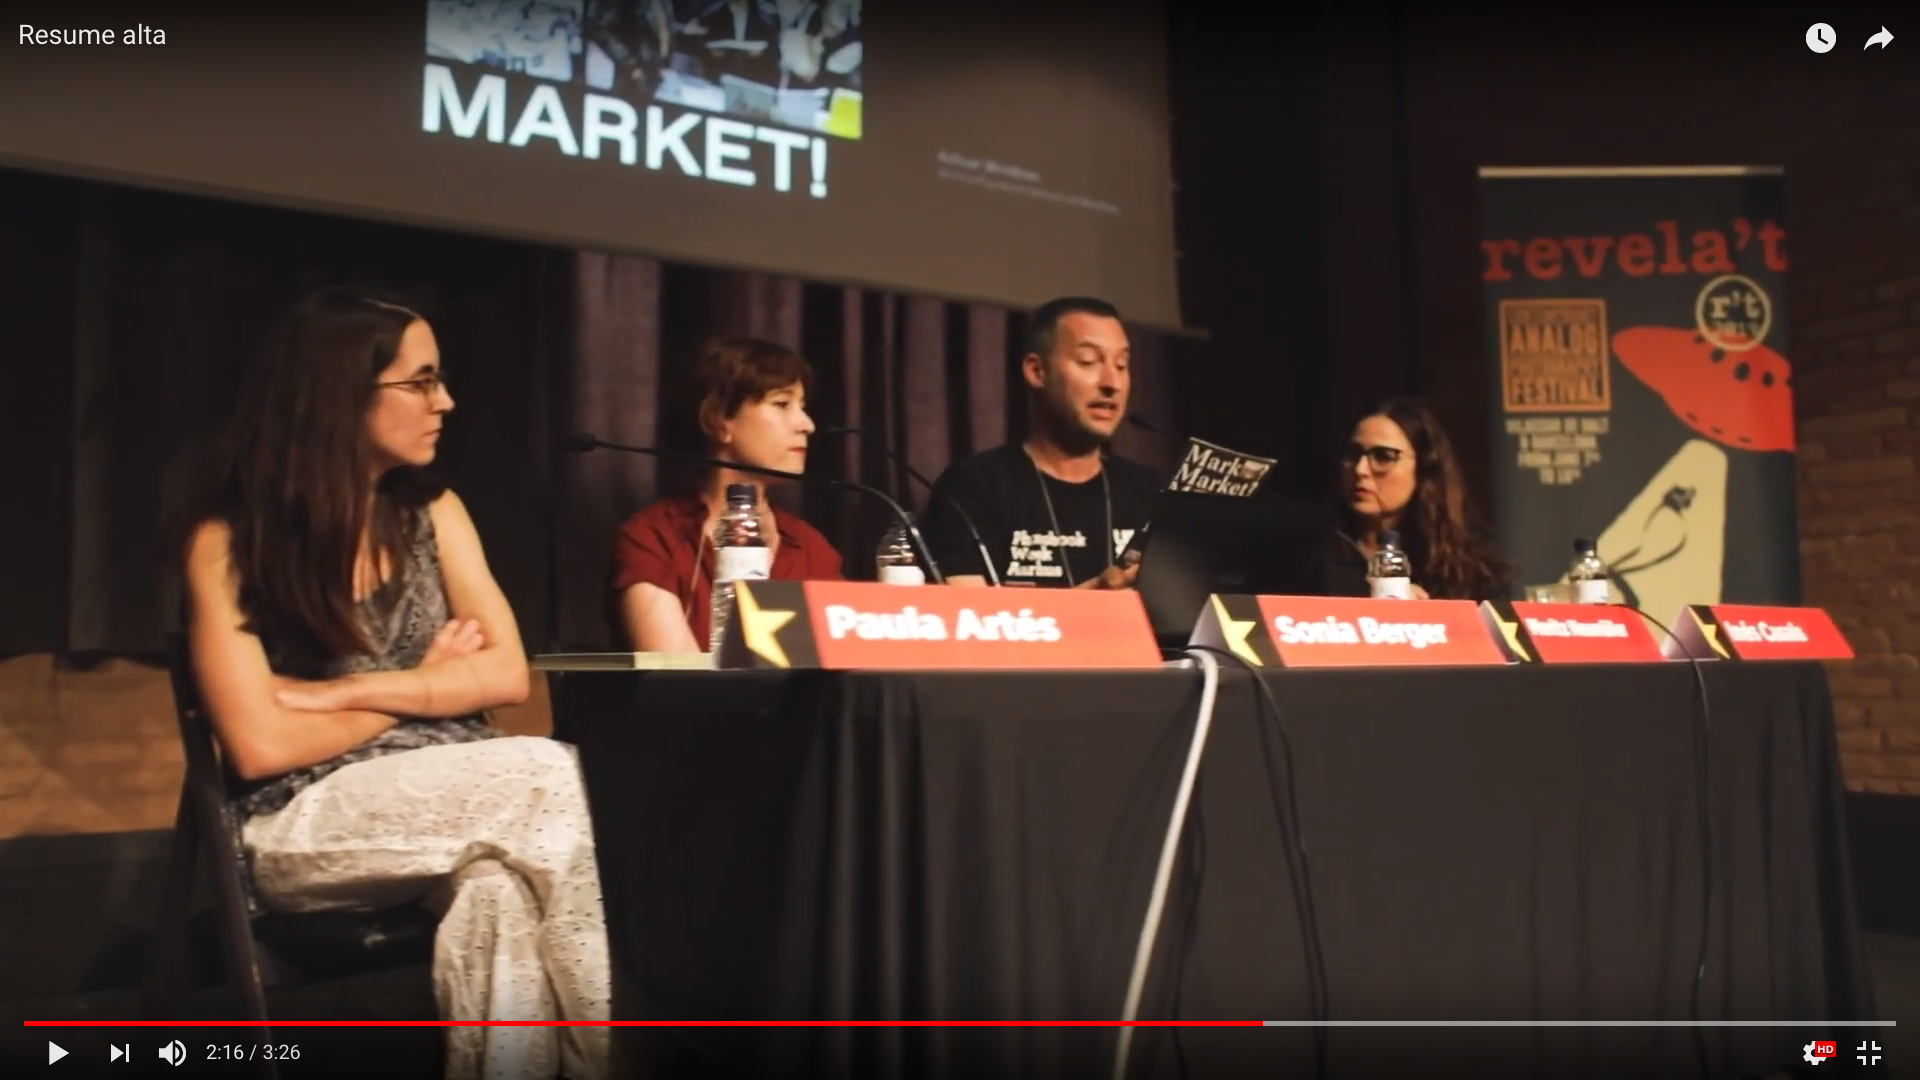 Market? What Market? featured at Revela'T festival in Barcelona